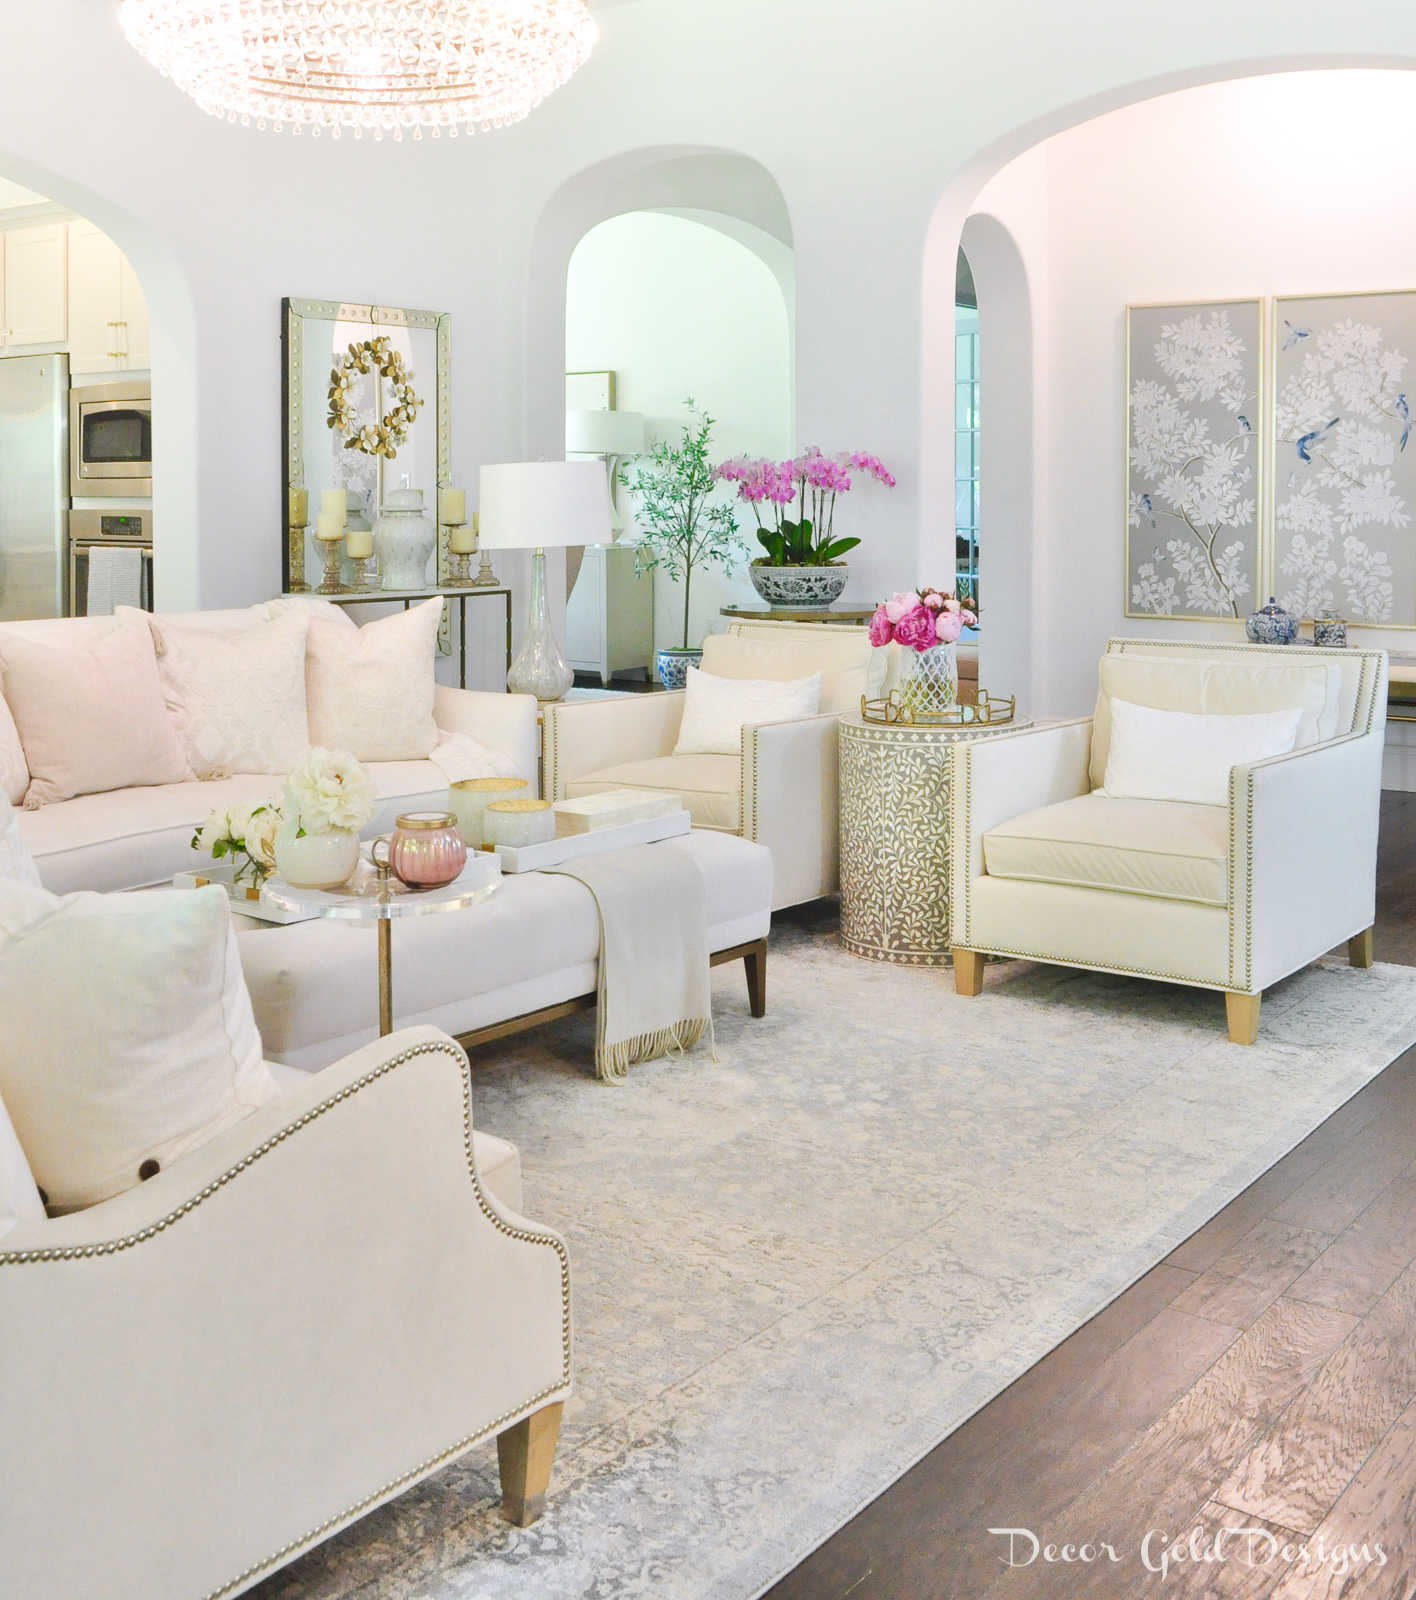 Summer home tour living room decor soft blush bright pink